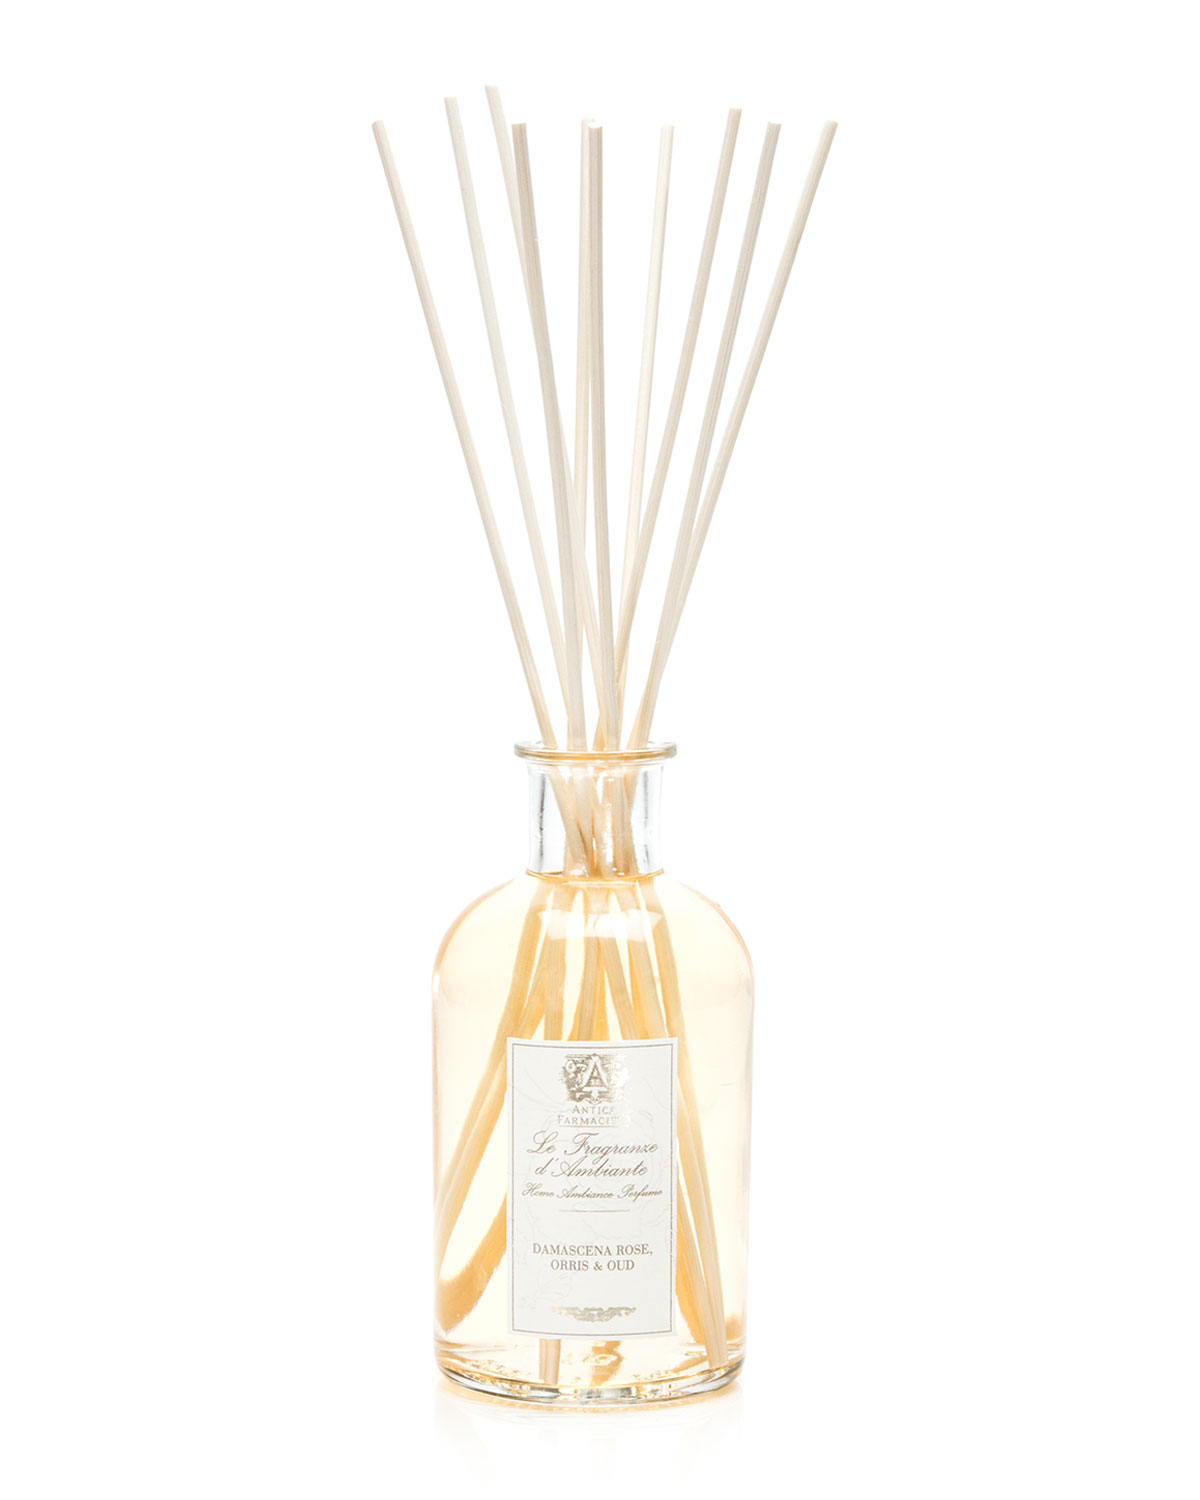 Antica Farmacista 17 oz. Damascena Rose, Orris & Oud Home Ambiance Diffuser